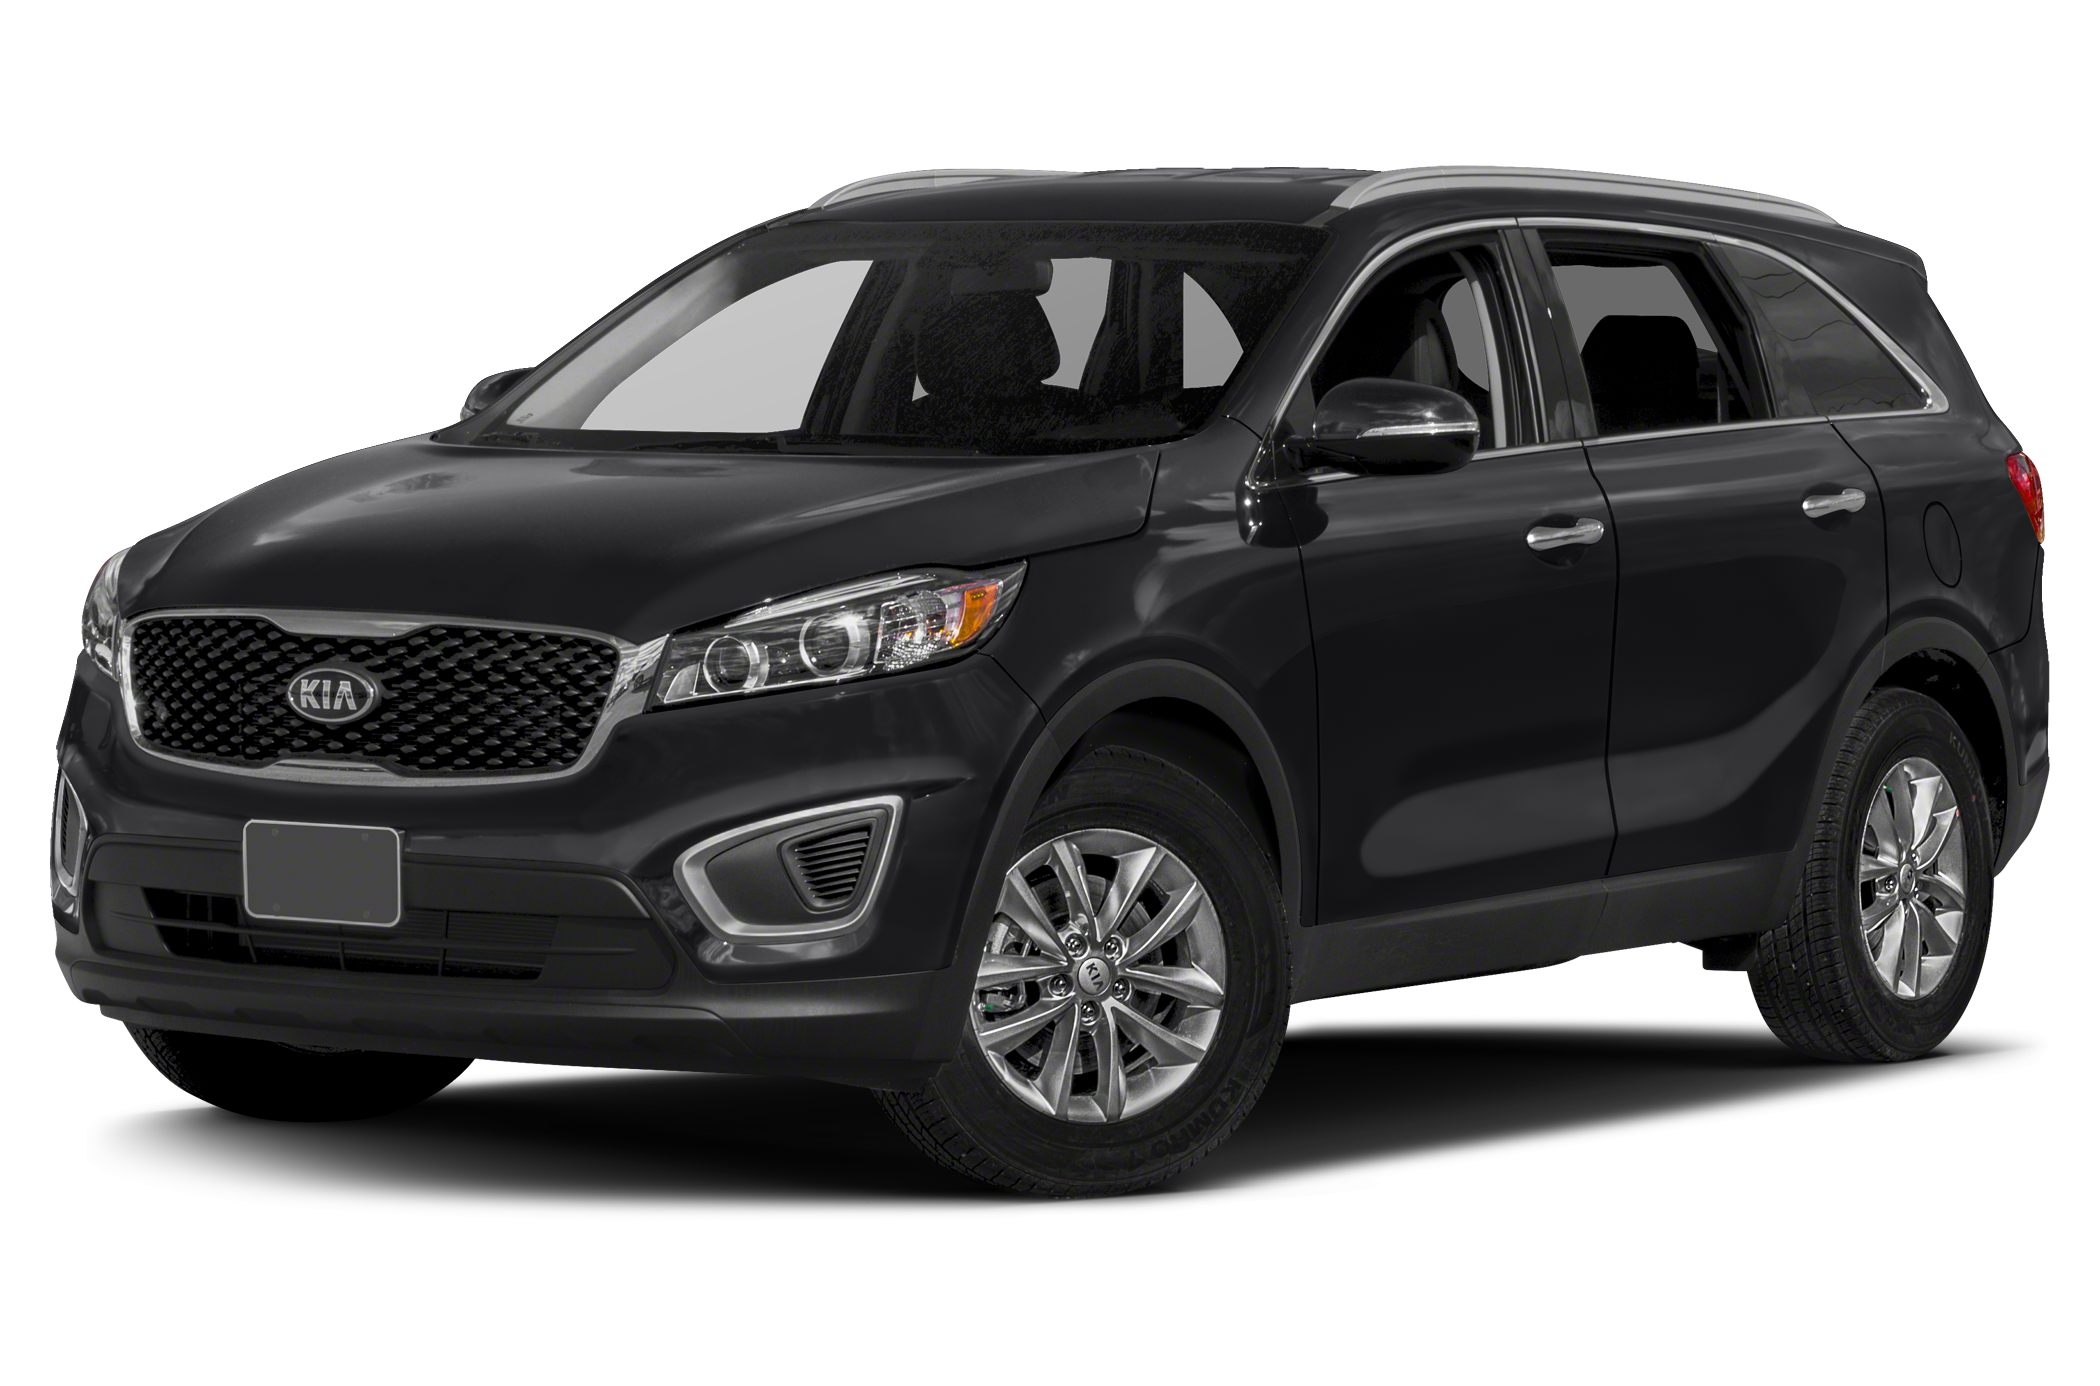 2016 Kia Sorento 24 LX New Price Clean CARFAX Platinum Graphite 2016 Kia Sorento LX AWD 6-Speed